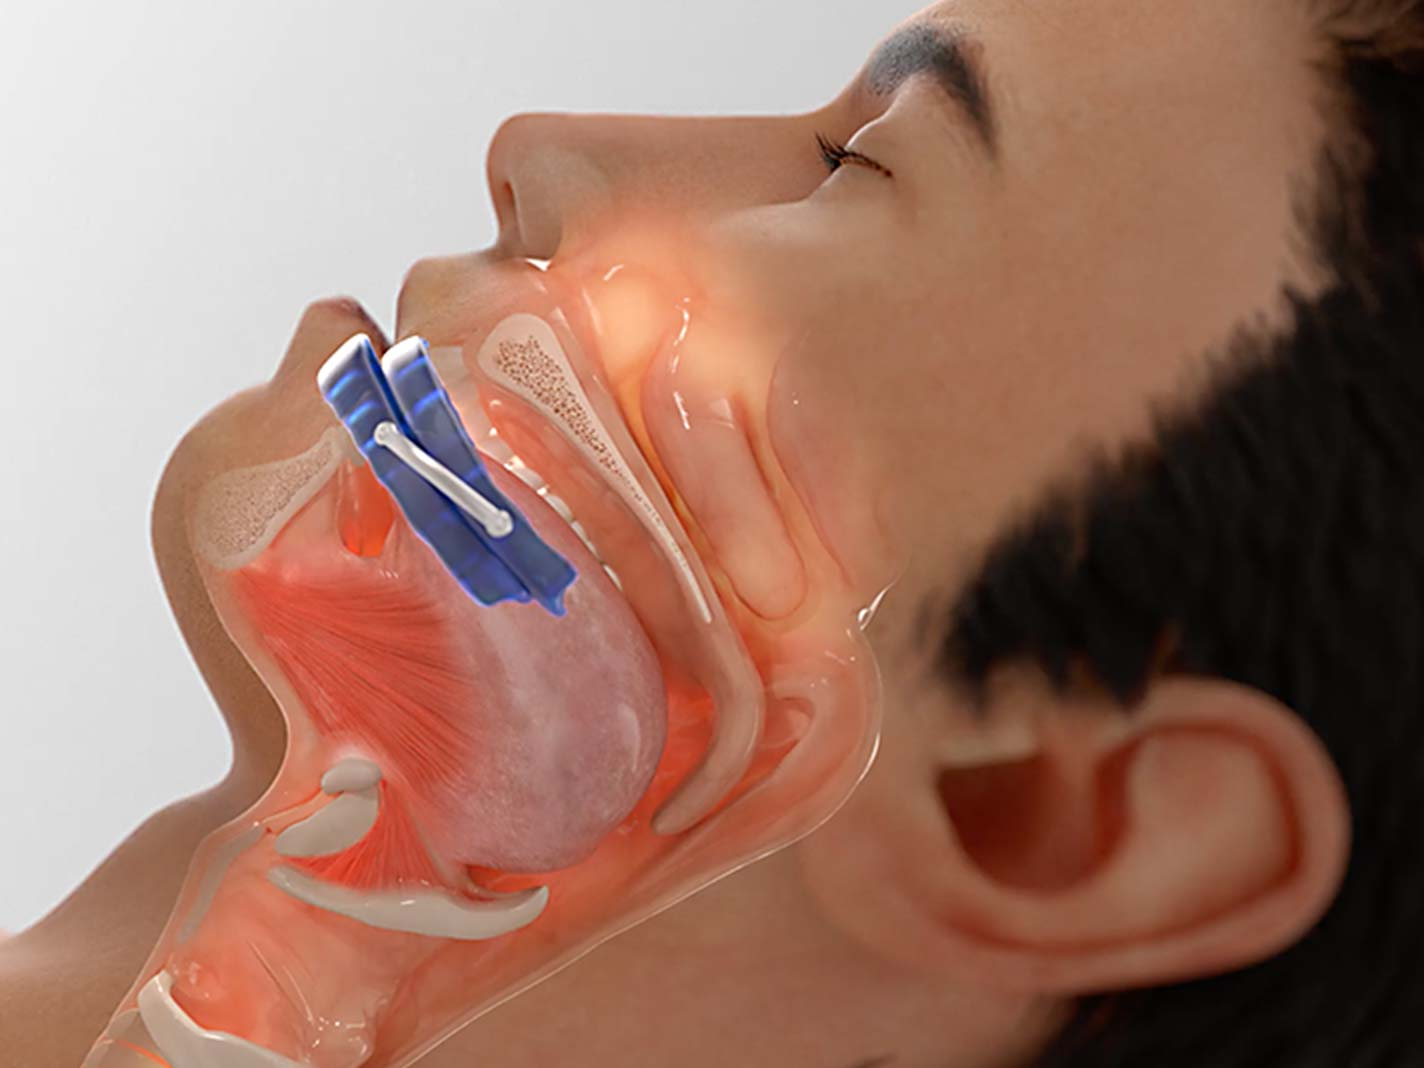 eXciteOSA for Snoring is an alternative to an MAD